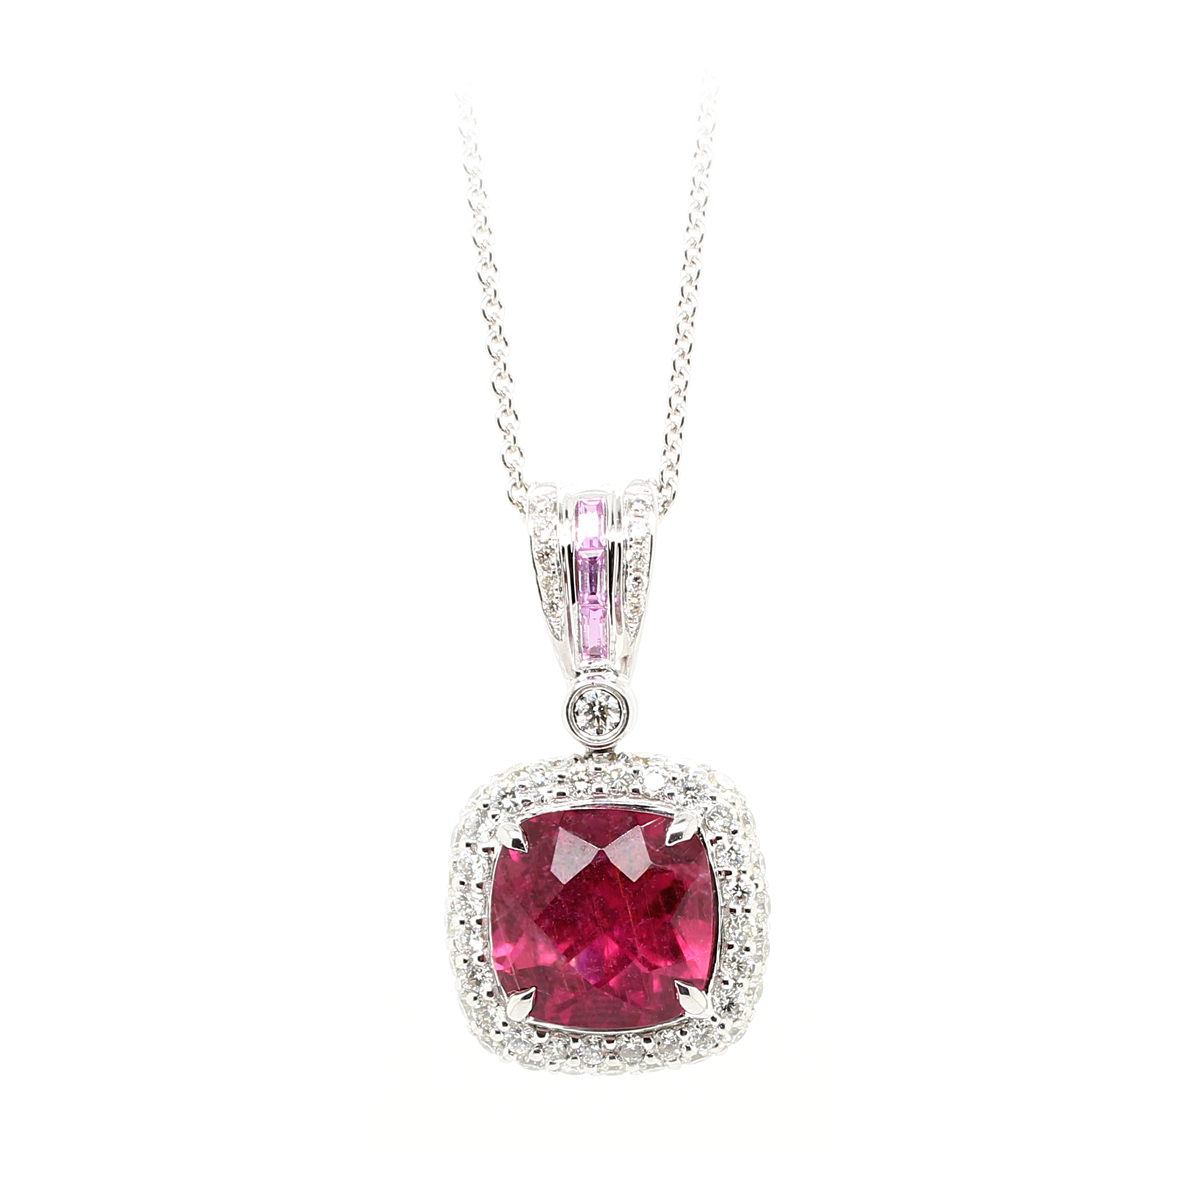 Charles Krypell 18 Karat White Gold Rubellite, Pink Sapphire, and Diamond Pendant Necklace